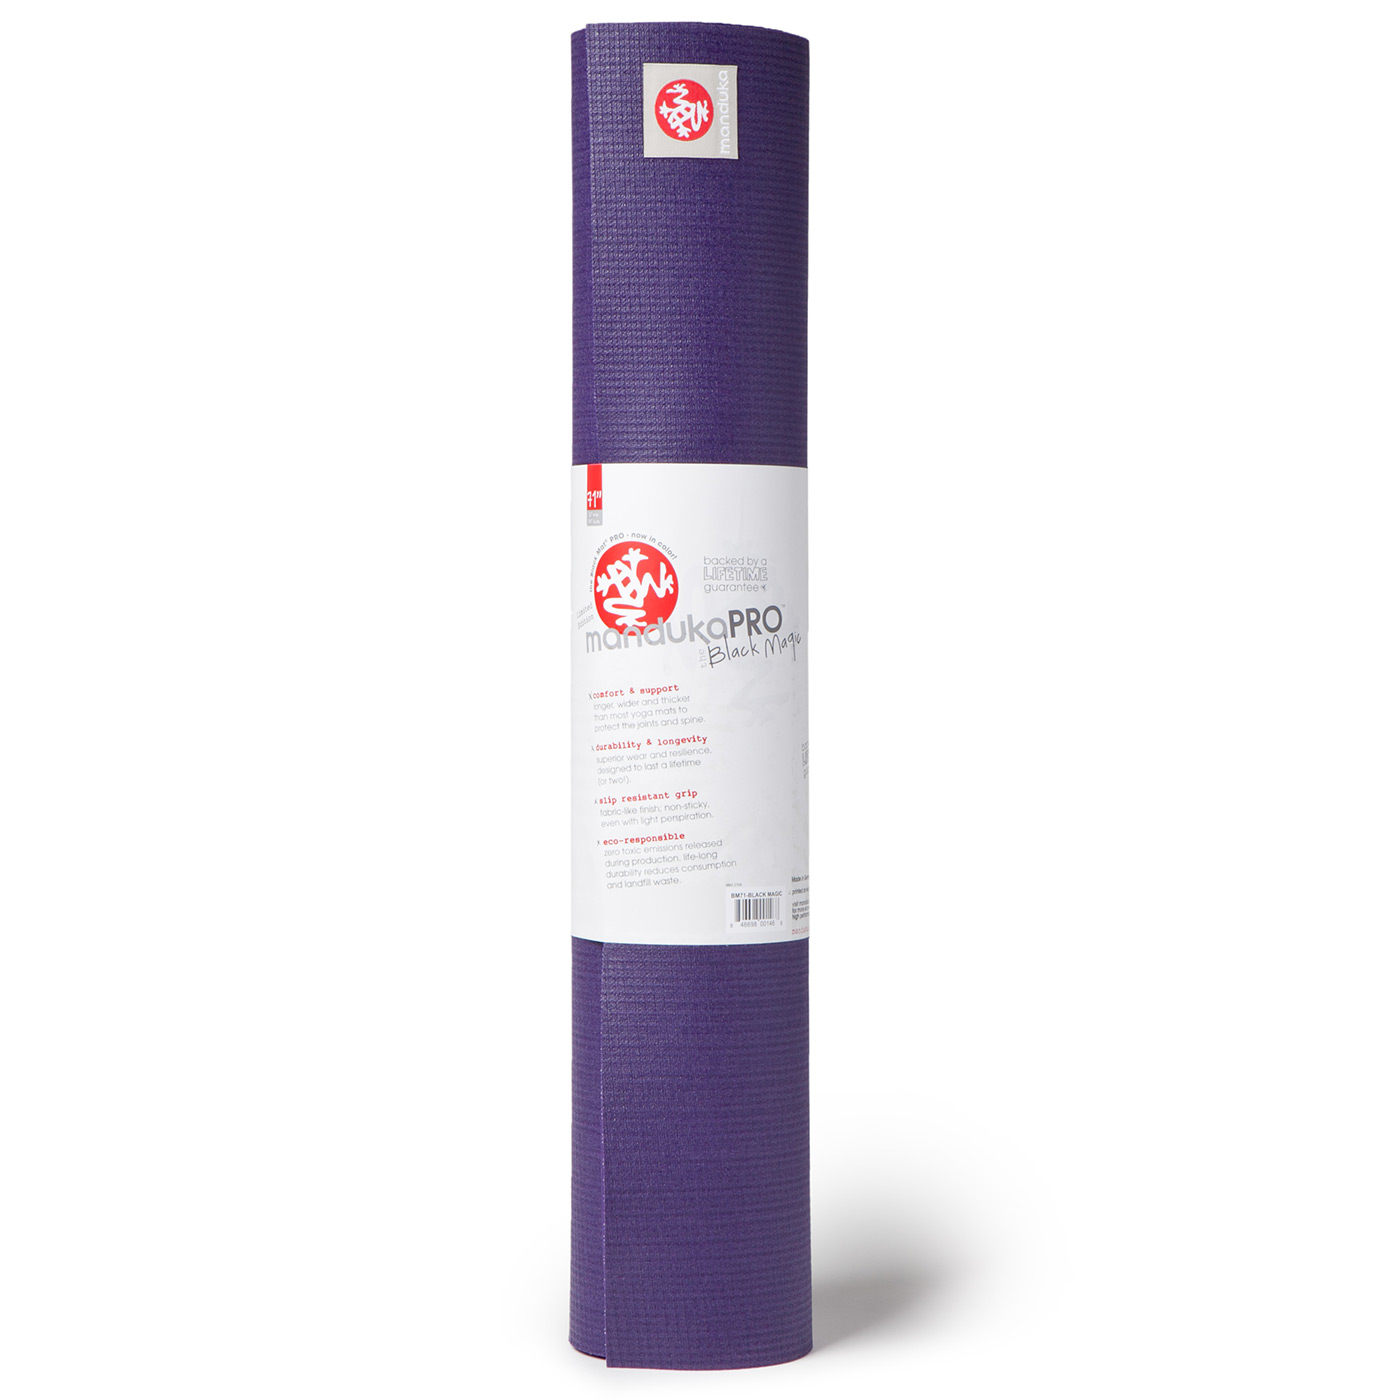 Manduka Pro Yoga Mat Limited Edition Yoga Apparel Amp Mats